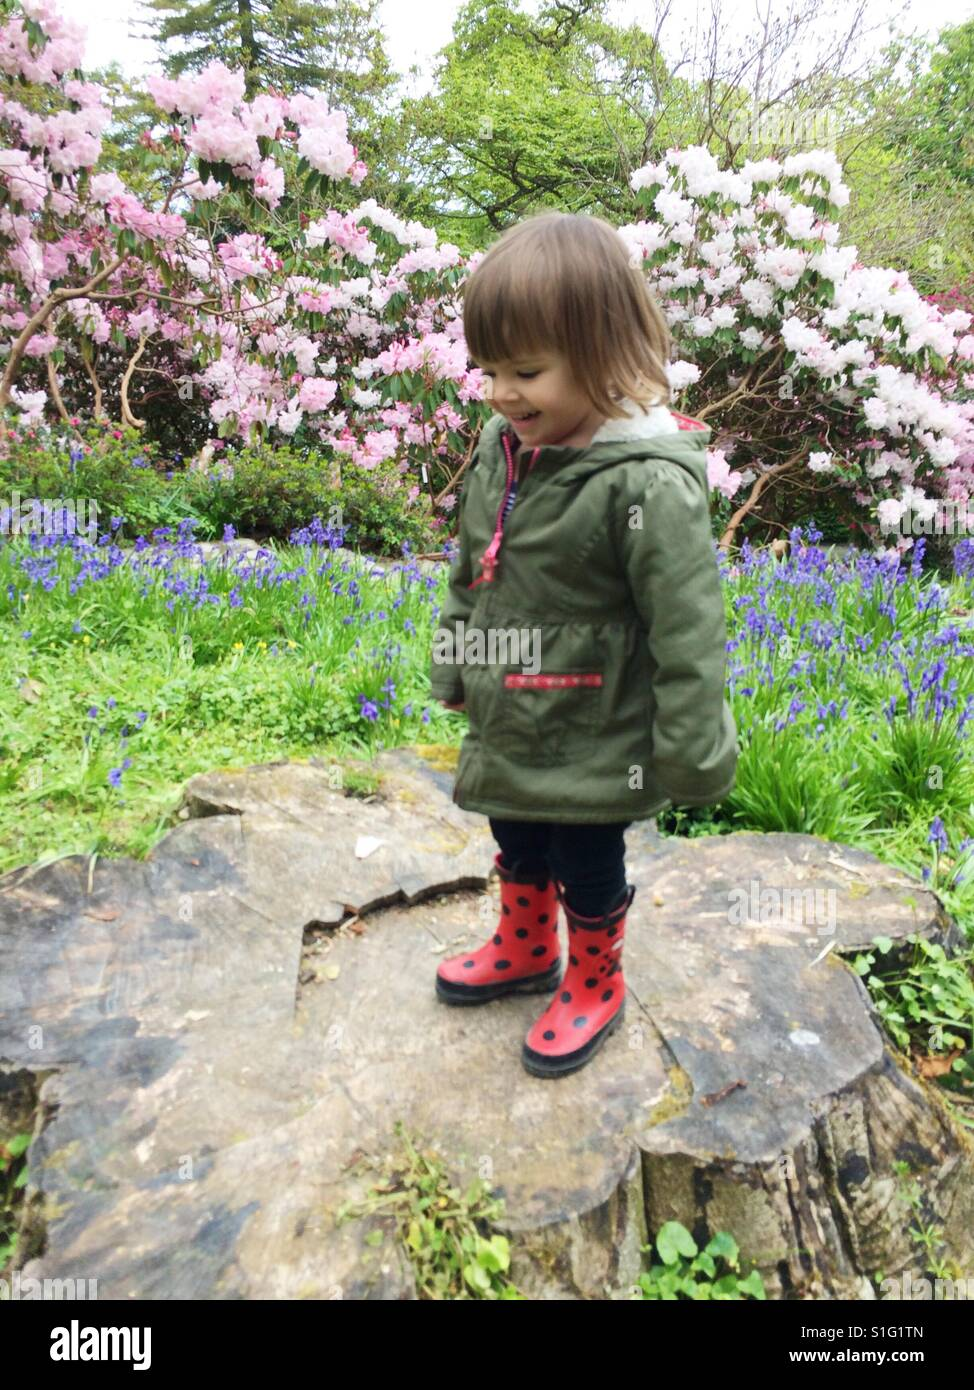 Toddler girl in rain boots playing in flower garden - Stock Image